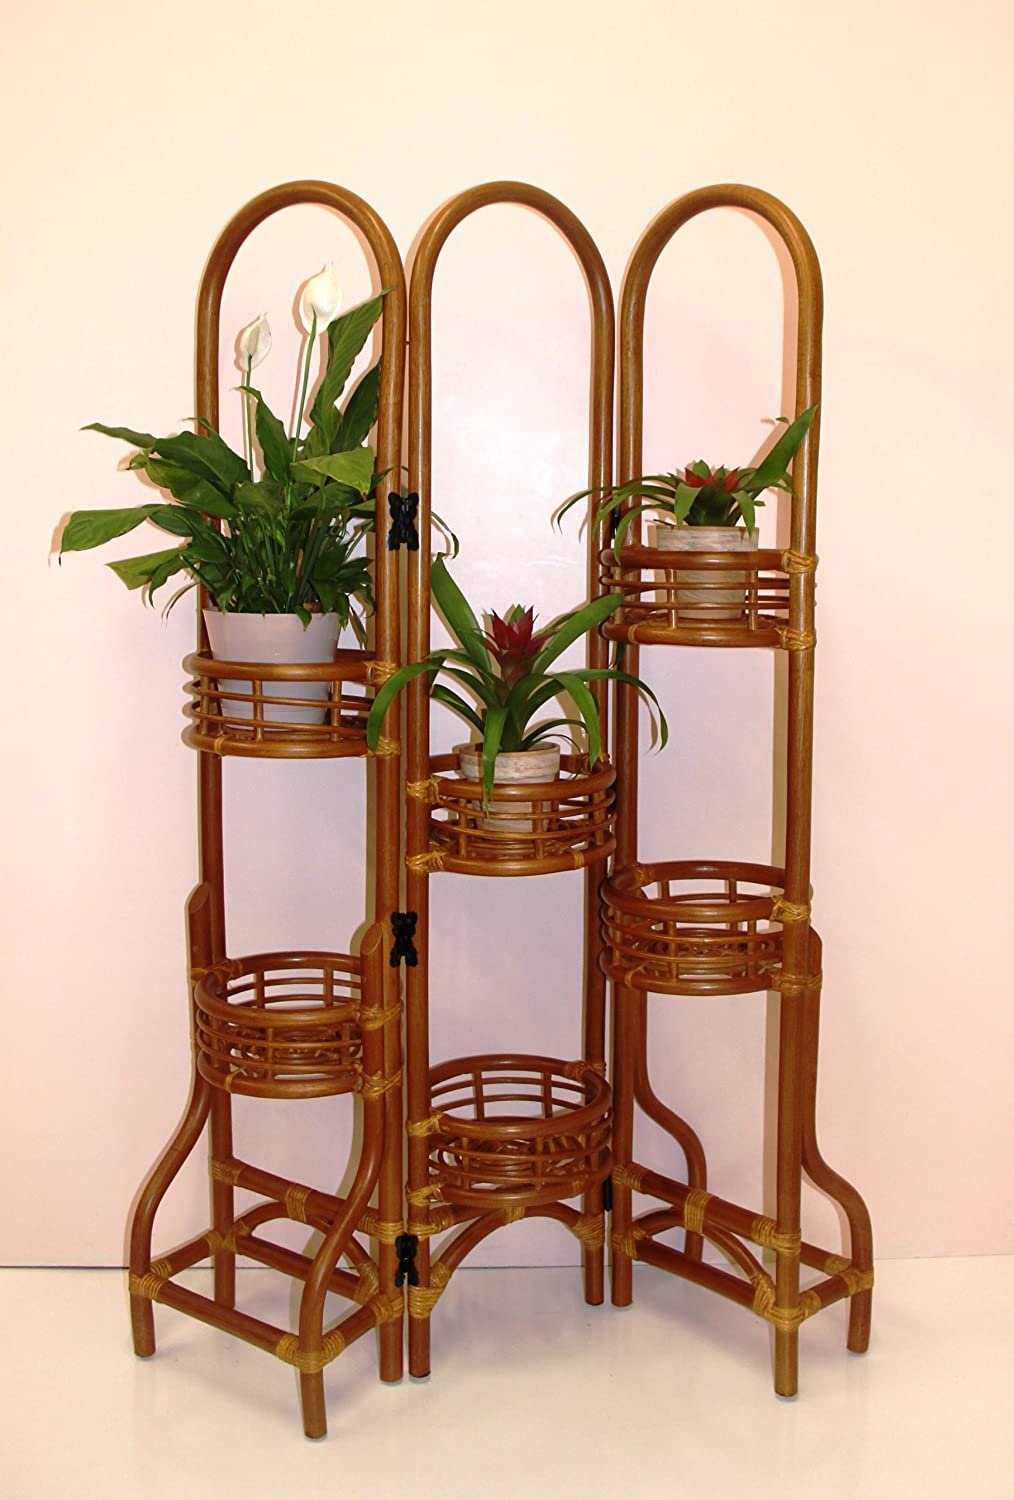 6 Tier Natural Rattan Wicker Plant Flower Stand Colonial